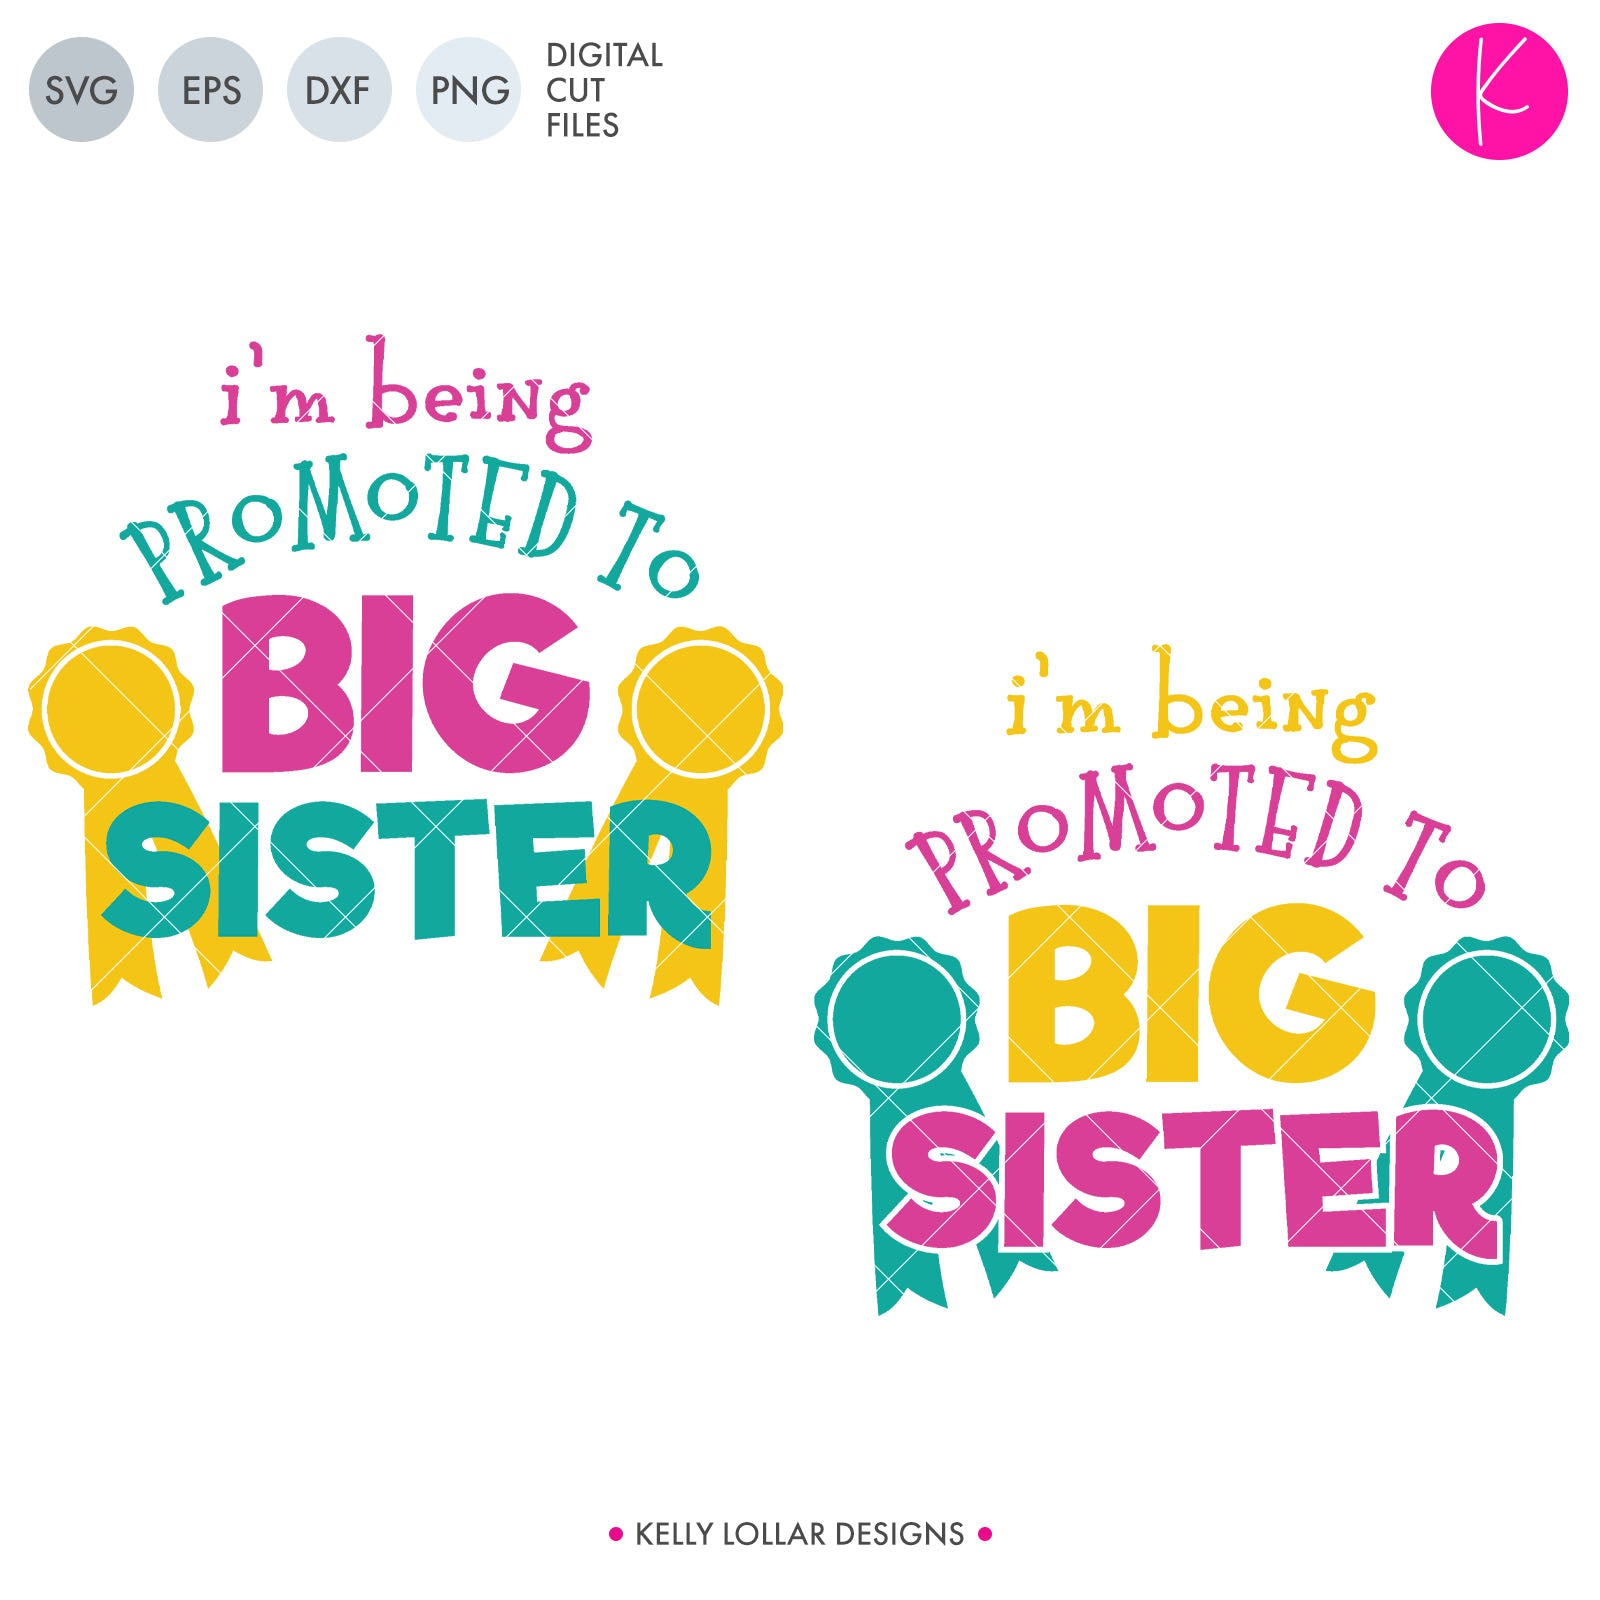 Sayings Family Celebration Svg Dxf Eps Png Cut Files Kelly Lollar Designs Tagged Pregnancy Announcement